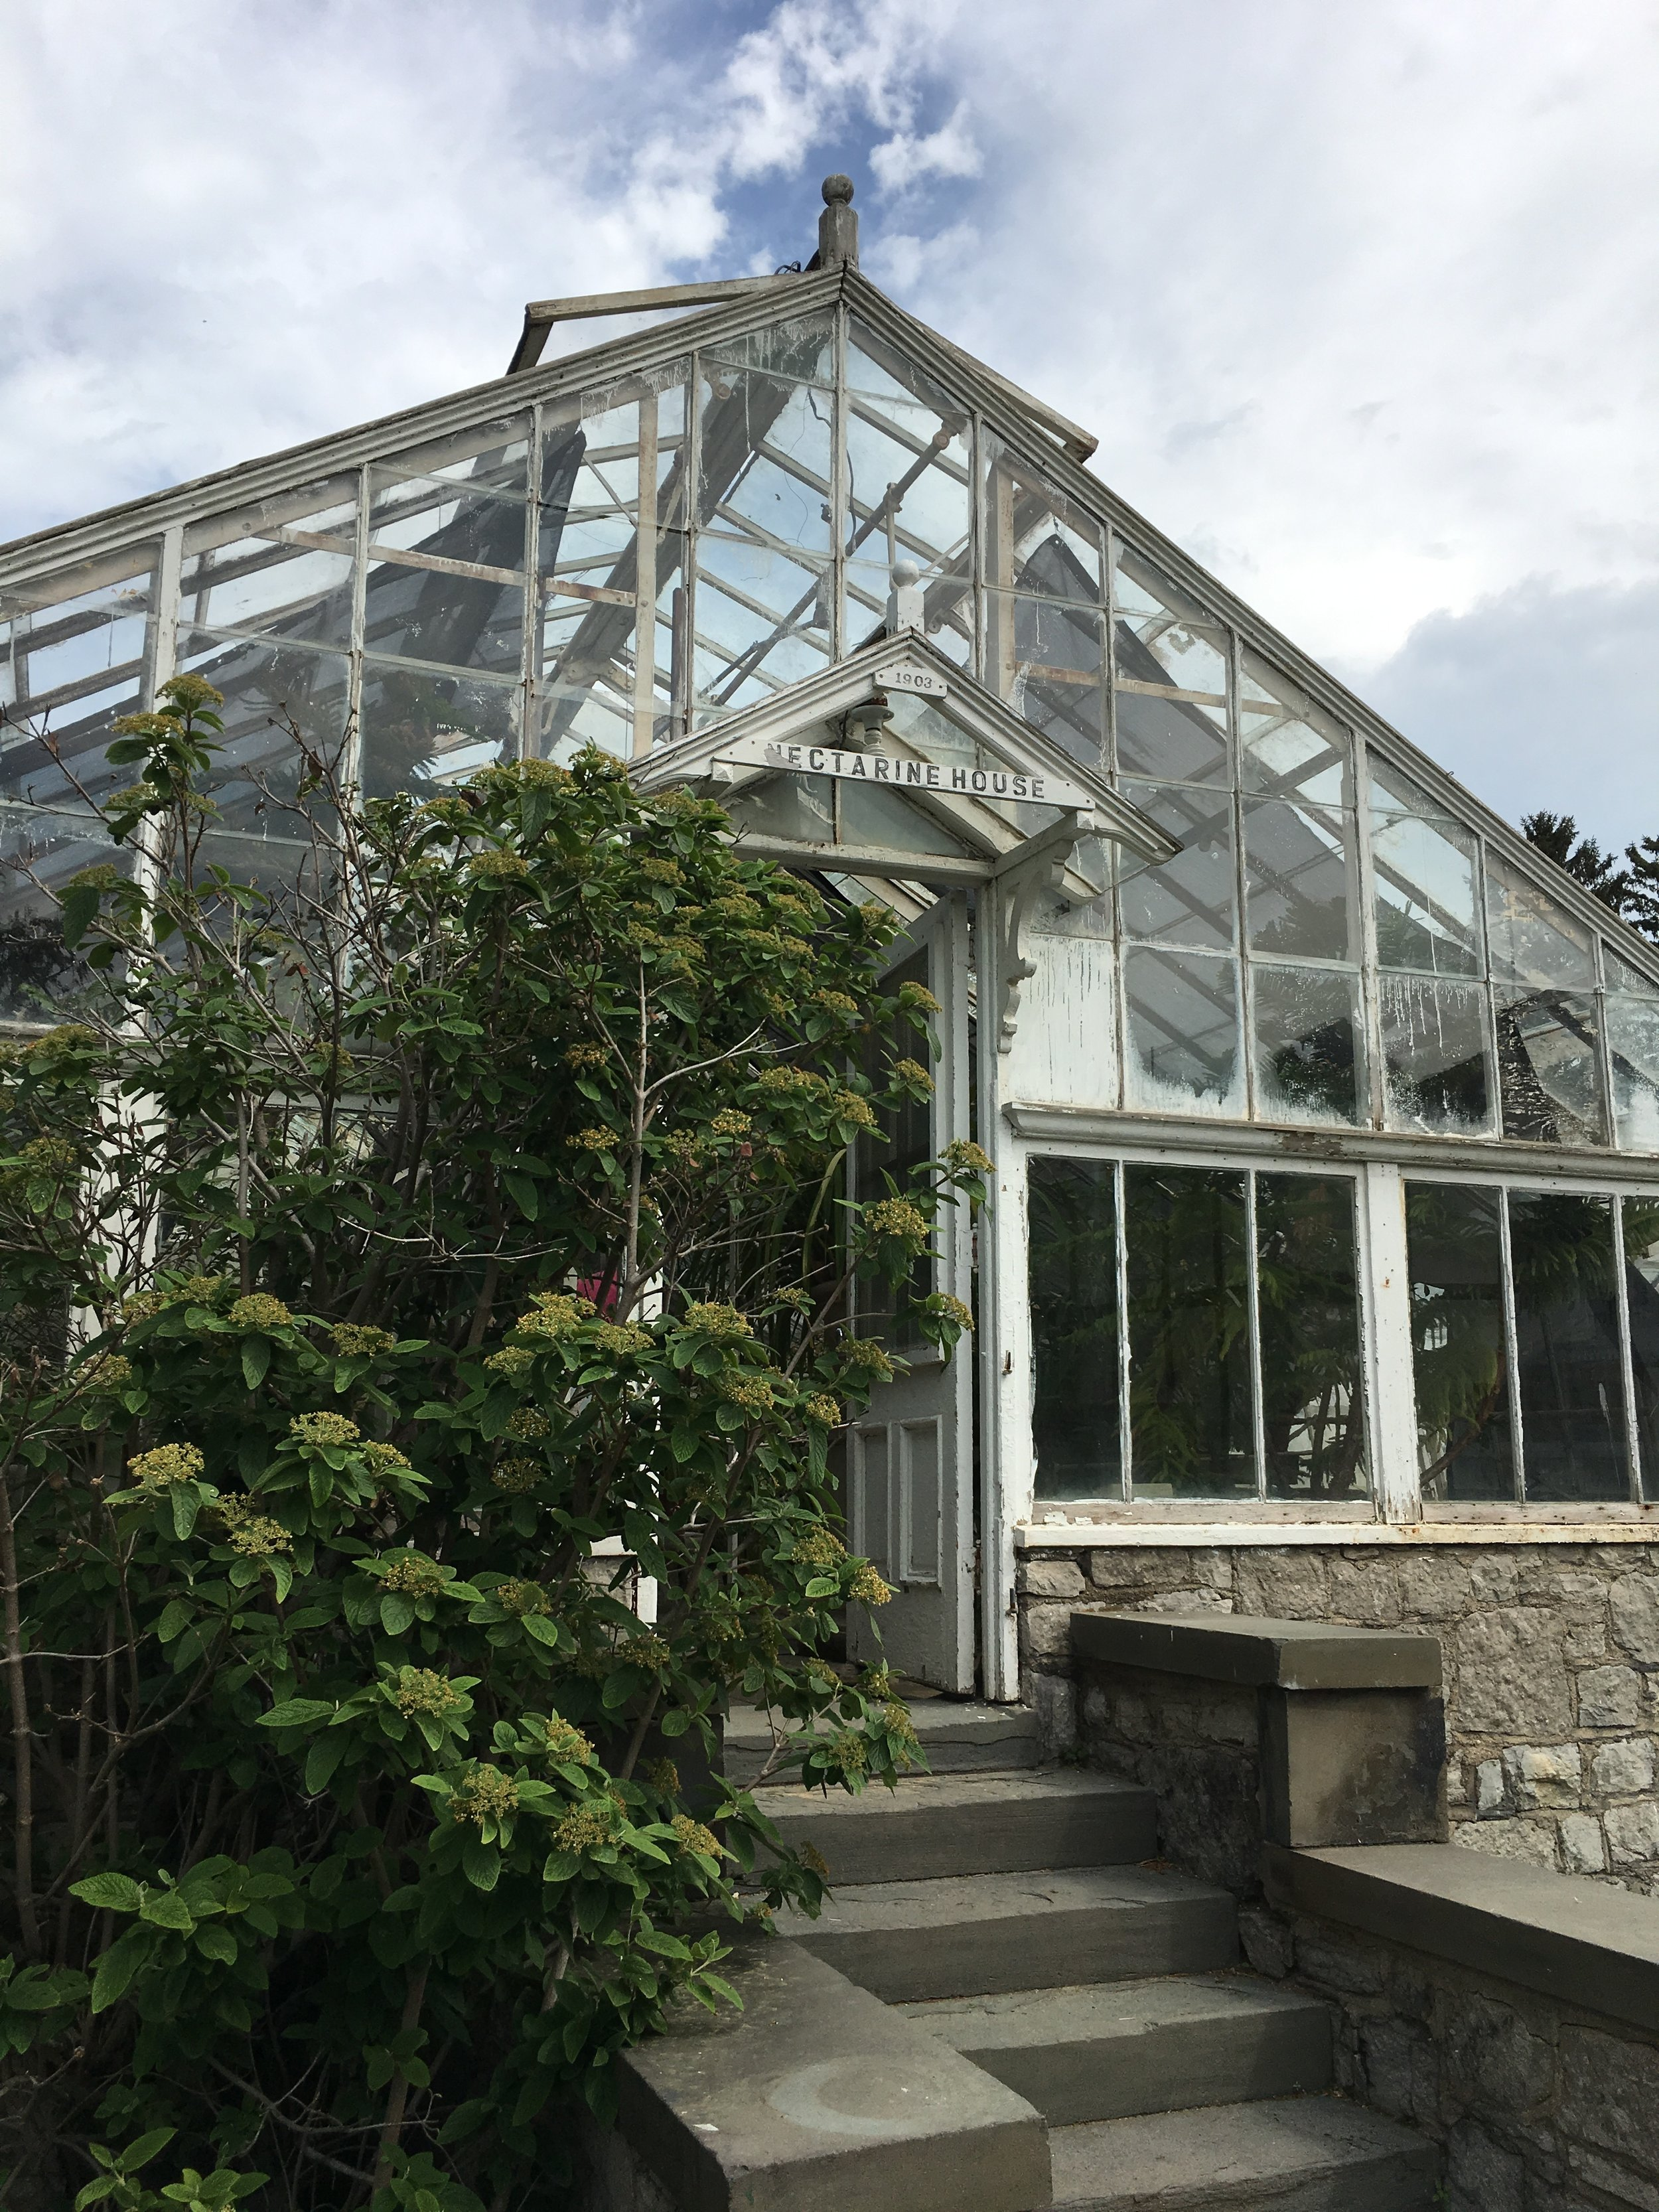 The Nectarine House with Sonnenburg Garden's collection of prizewinning orchids